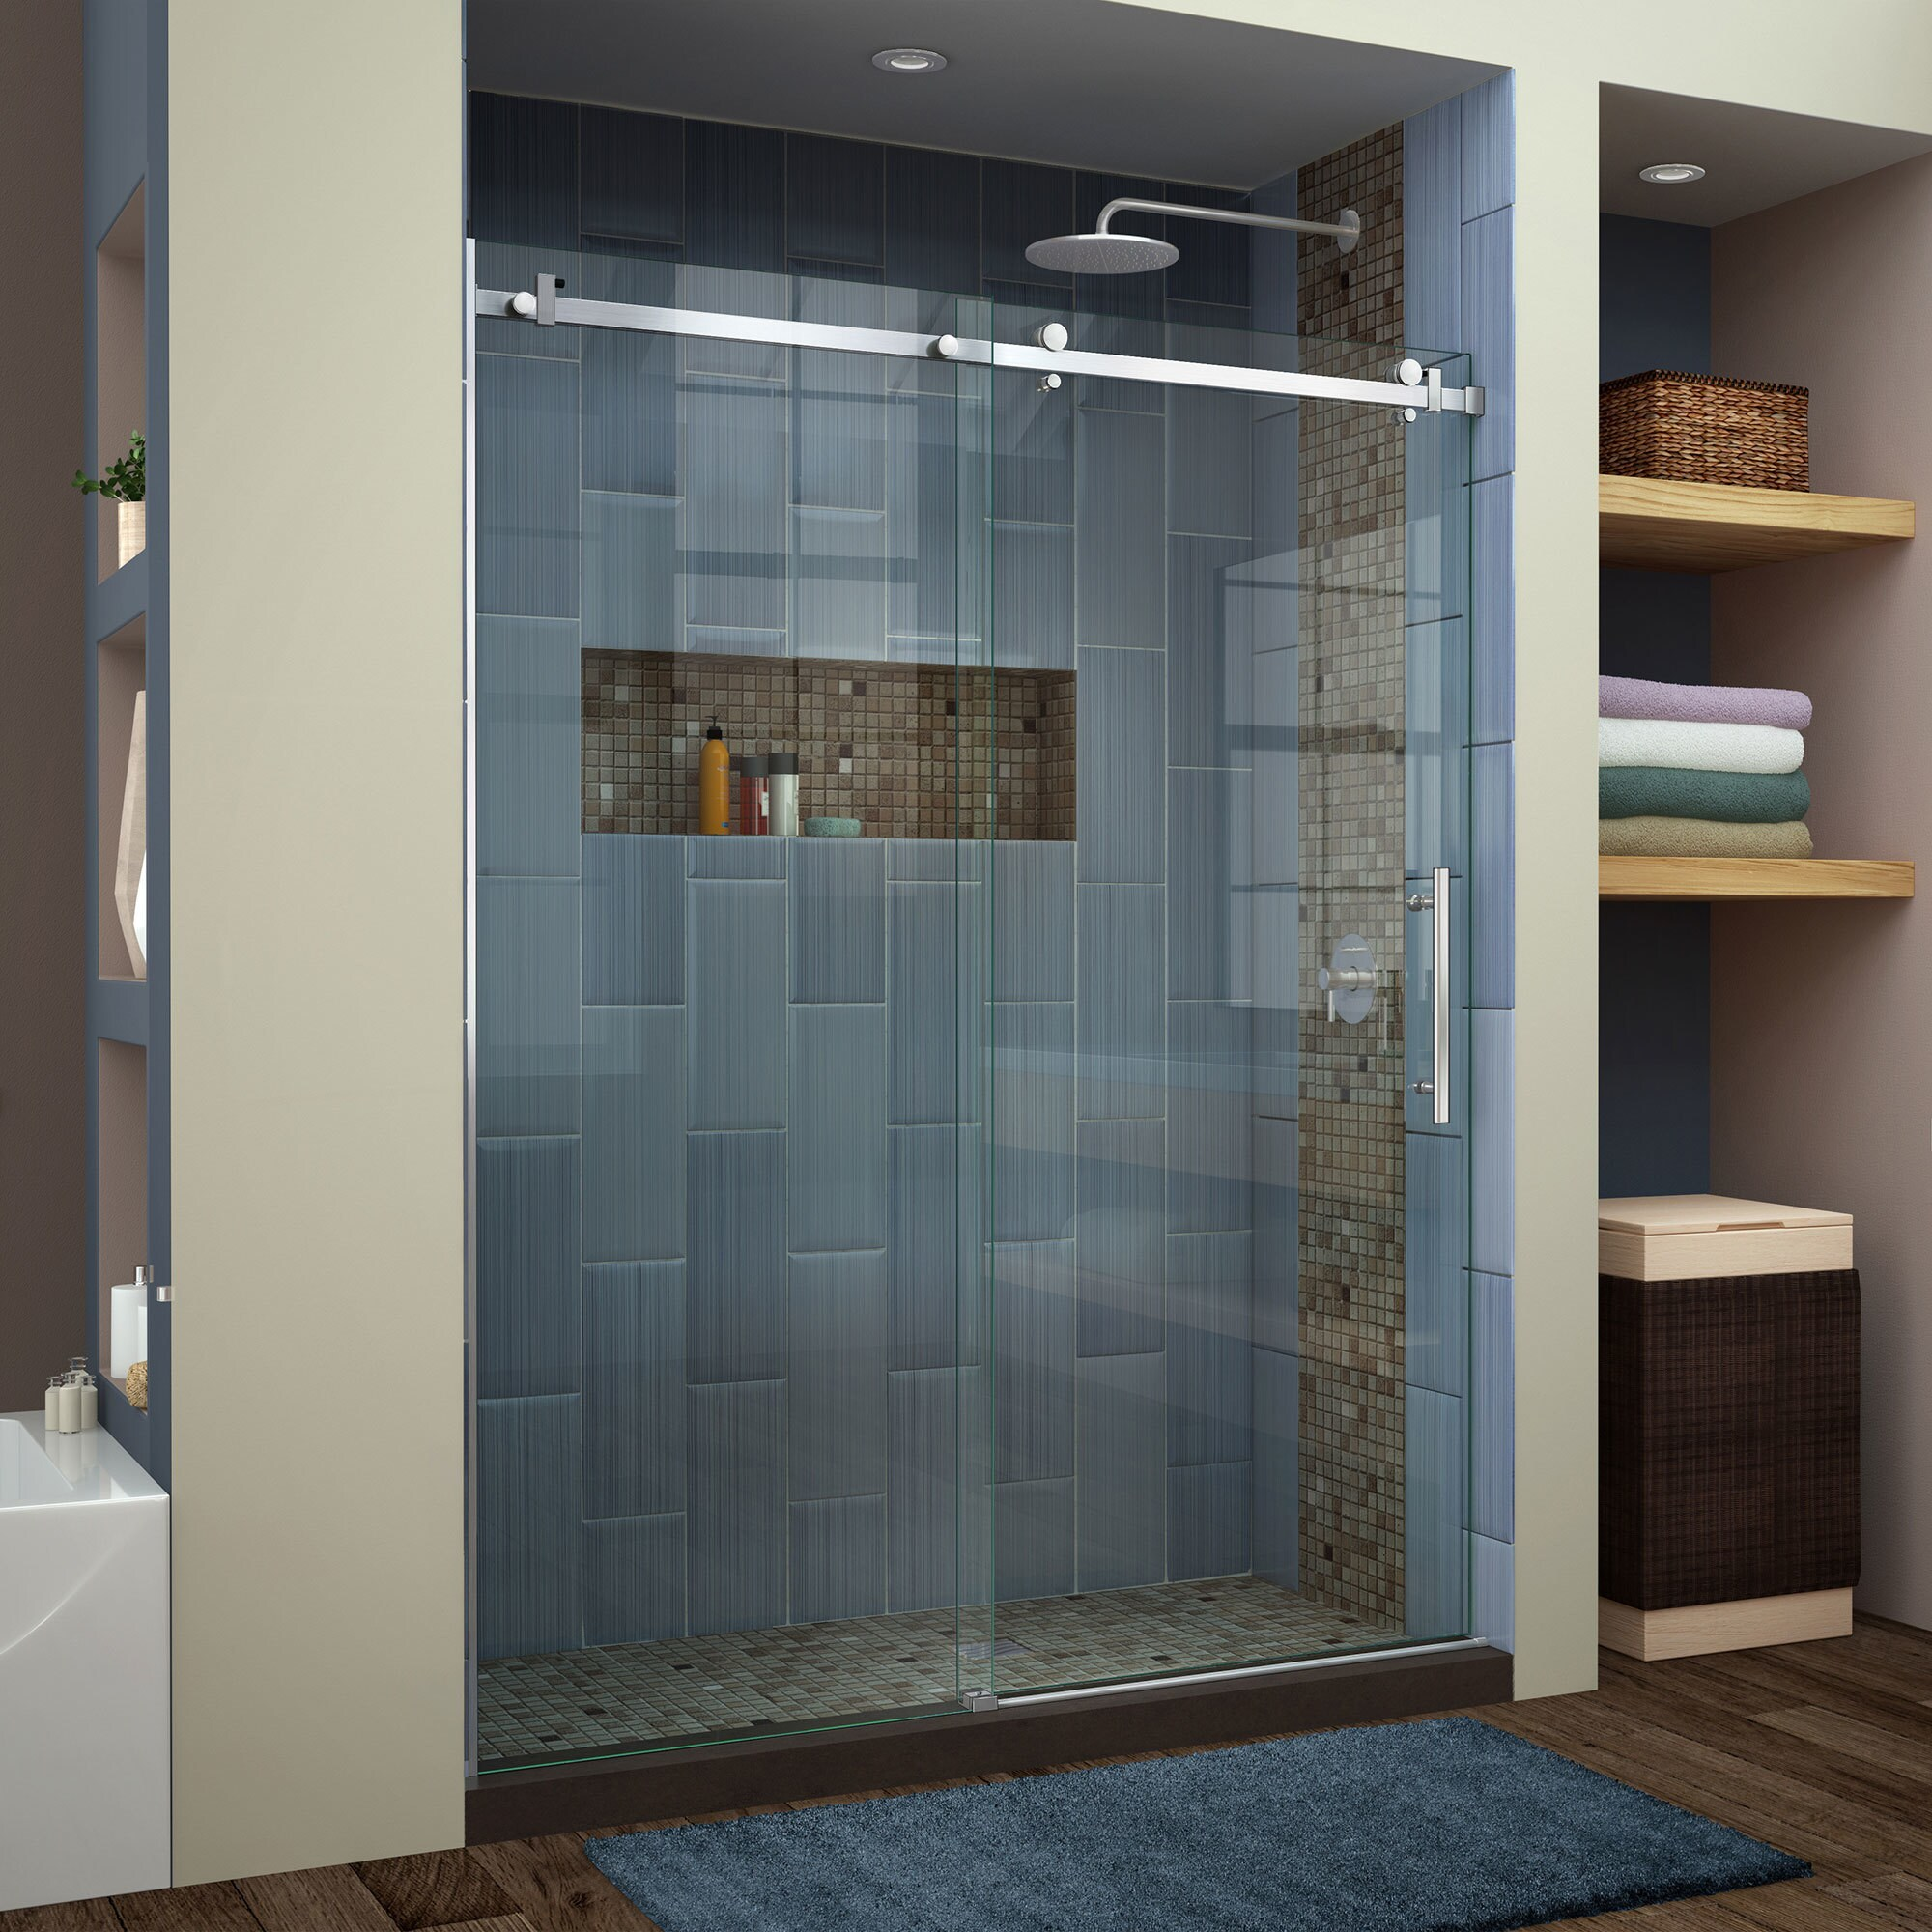 frameless home improvement shower enigma x dreamline clear doors wayfair single technology pdx door z max with sliding